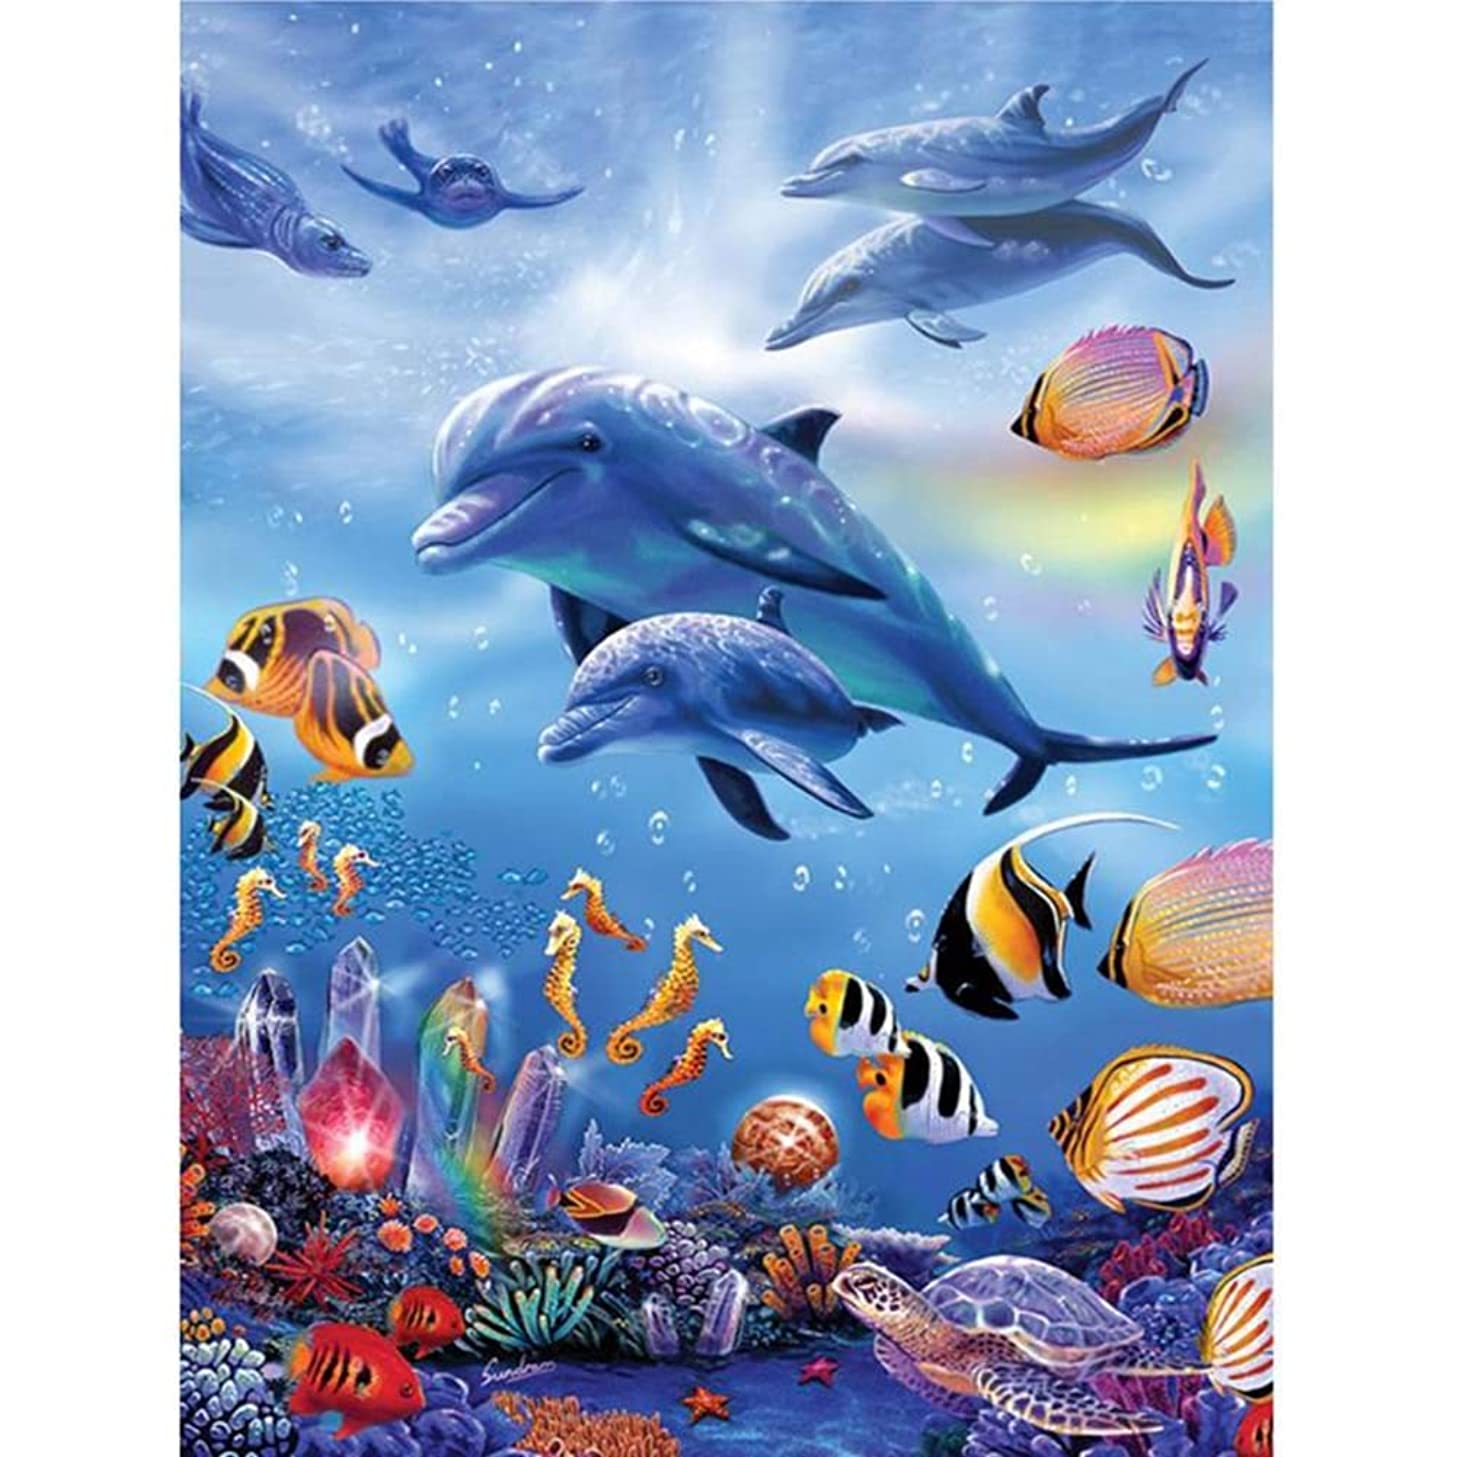 UPMALL DIY 5D Diamond Painting by Number Kits, Full Drill Crystal Rhinestone Embroidery Pictures Arts Craft for Home Wall Decoration Underwater World 11.81×15.75 Inches